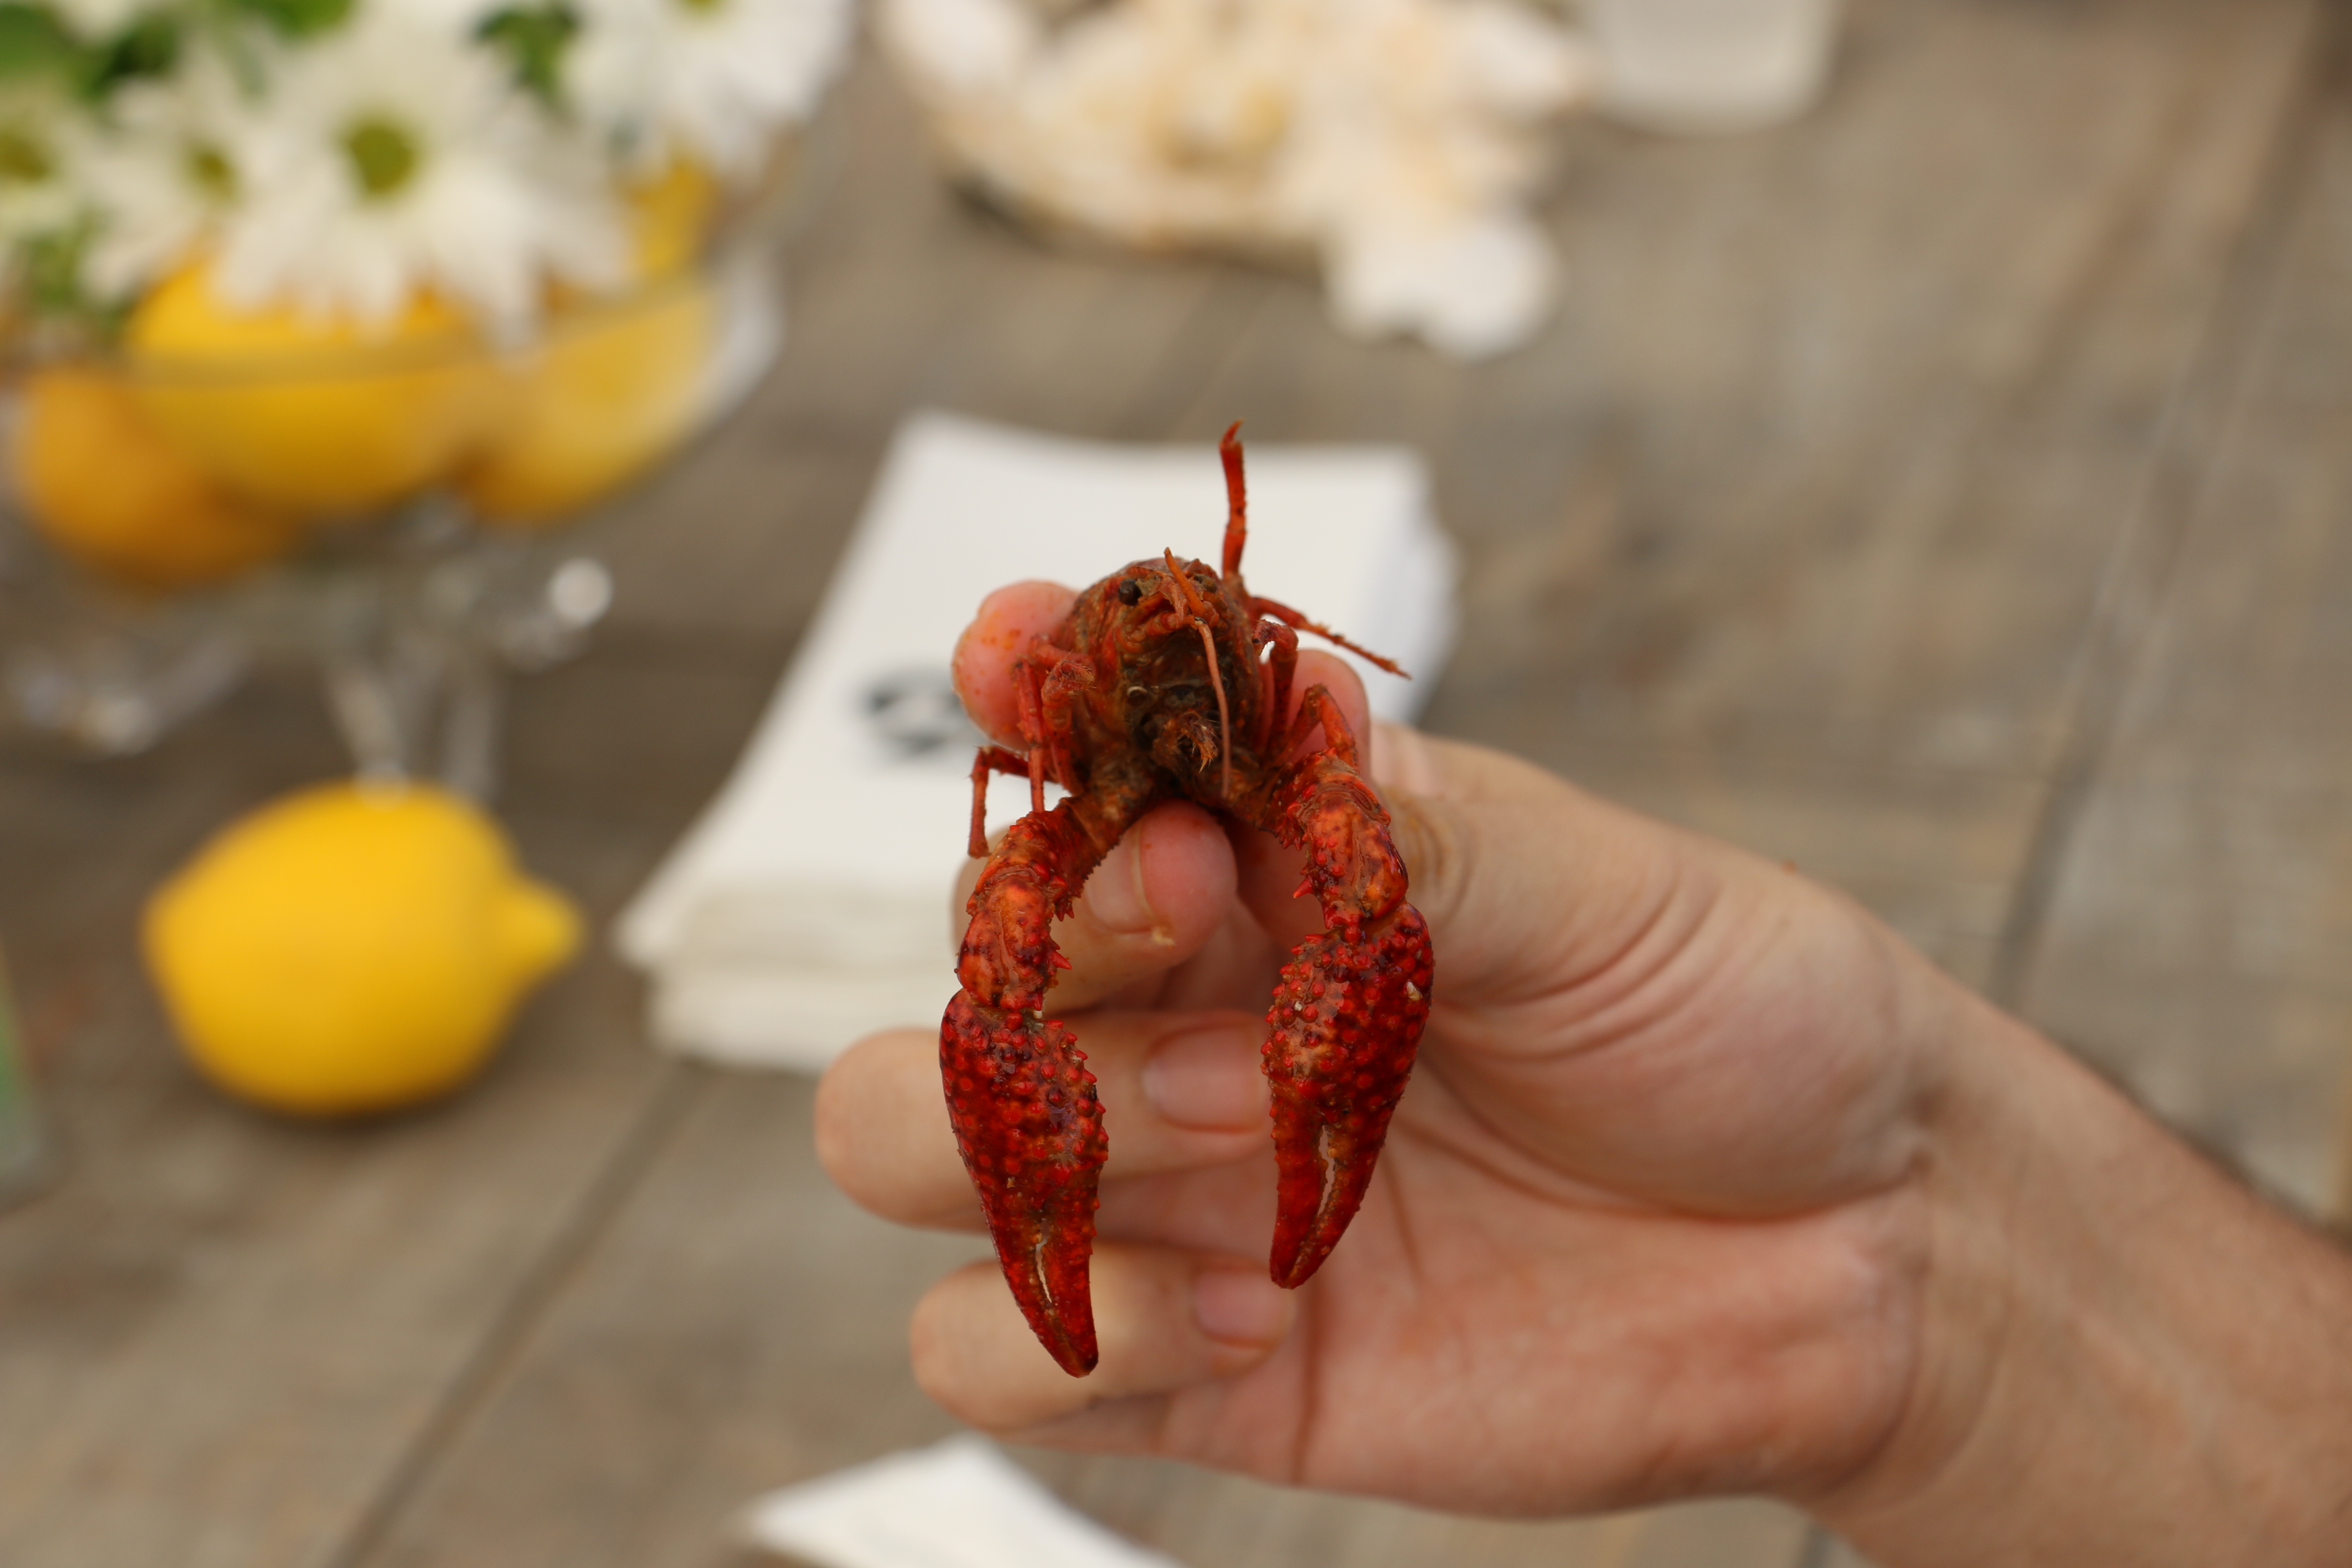 Guests enjoyed crawfish!